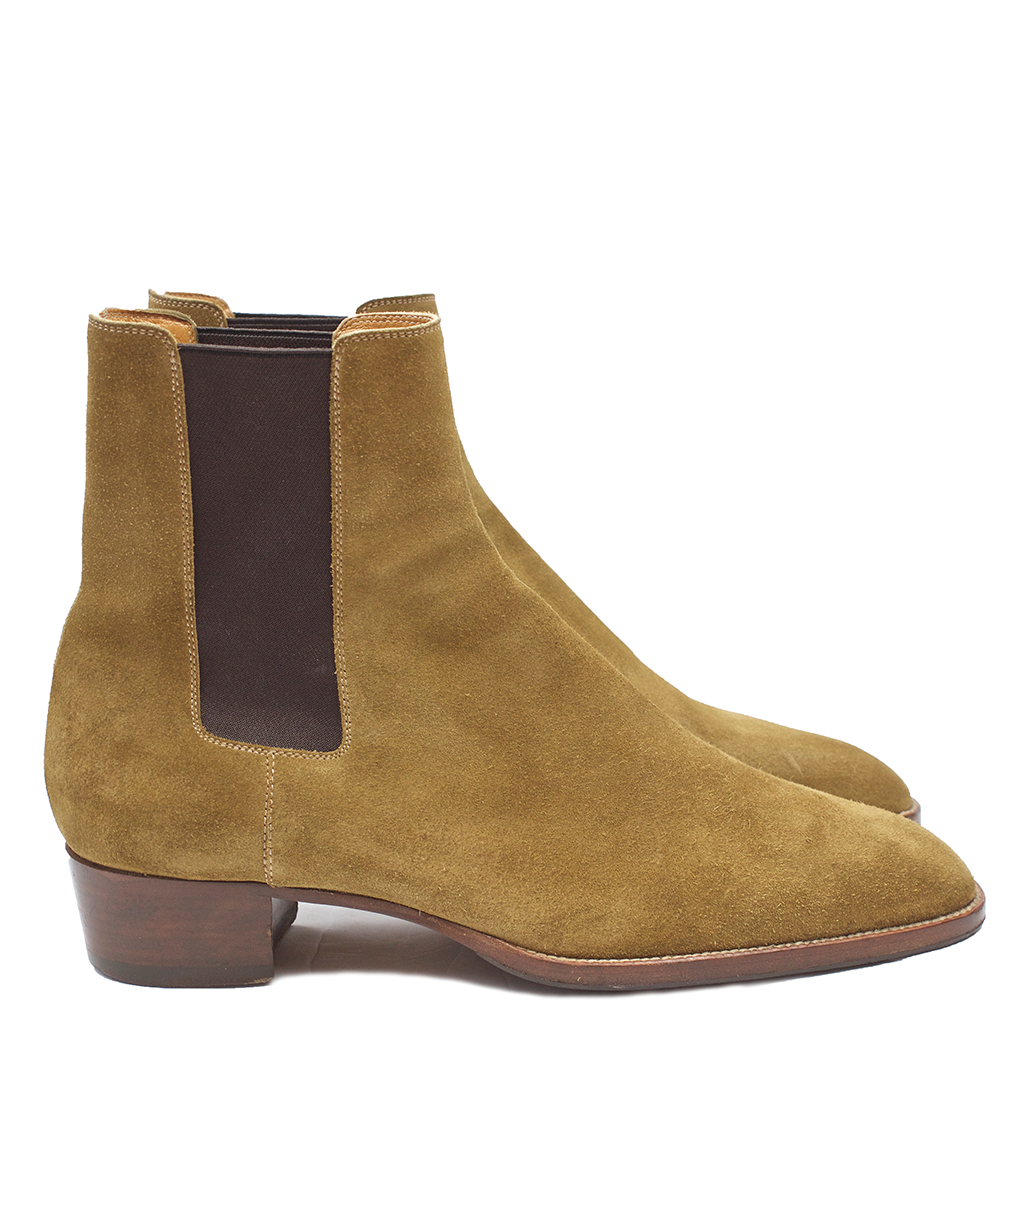 Saint Laurent Tan Suede 40MM Chelsea Boots – Antoinette Boutique bbbe18676